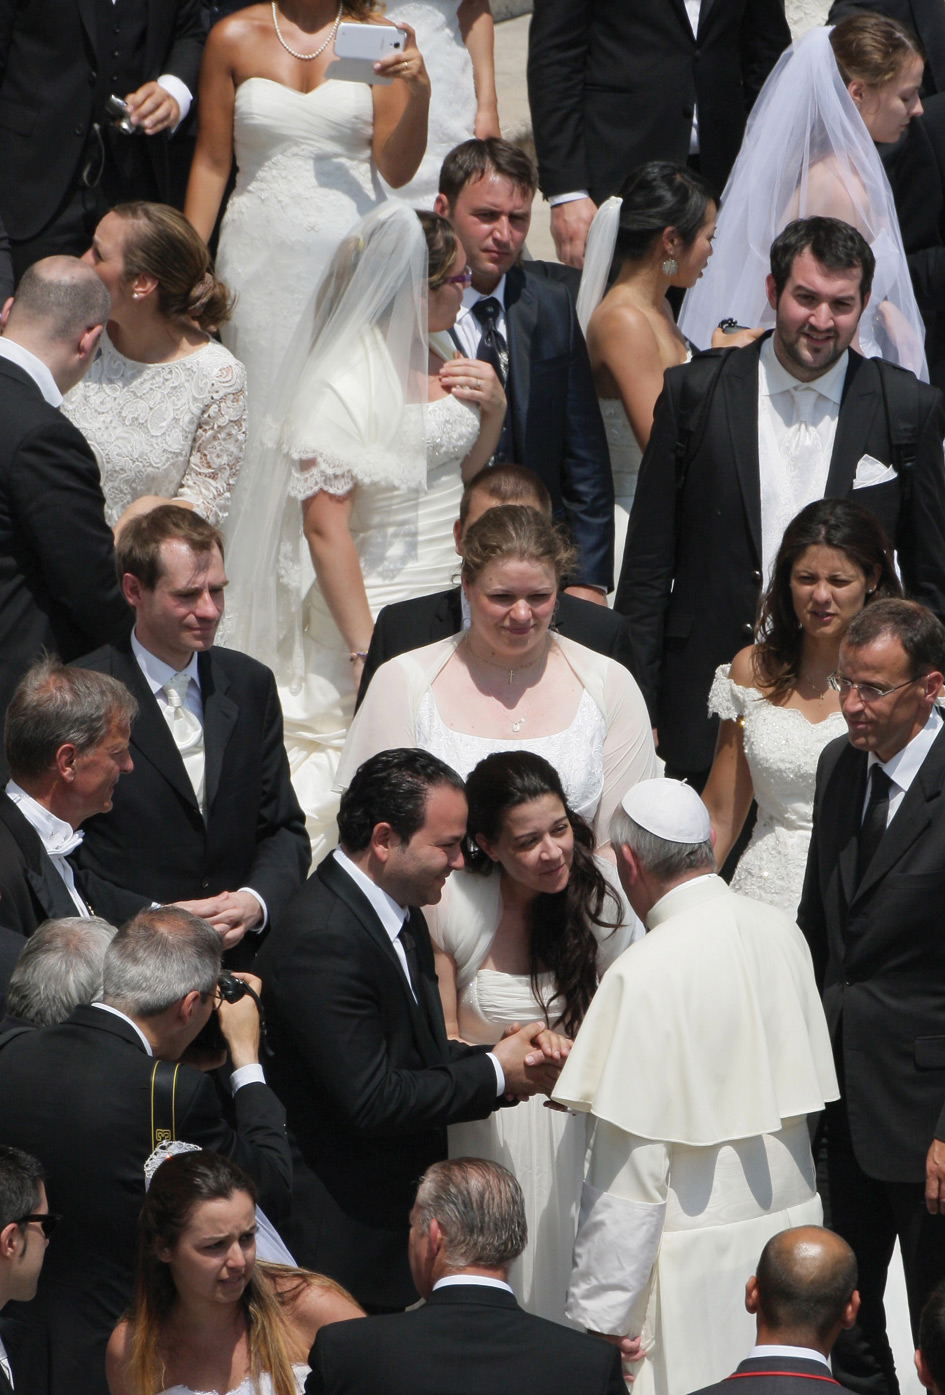 vatican official reaffirms teaching on divorced remarried catholics